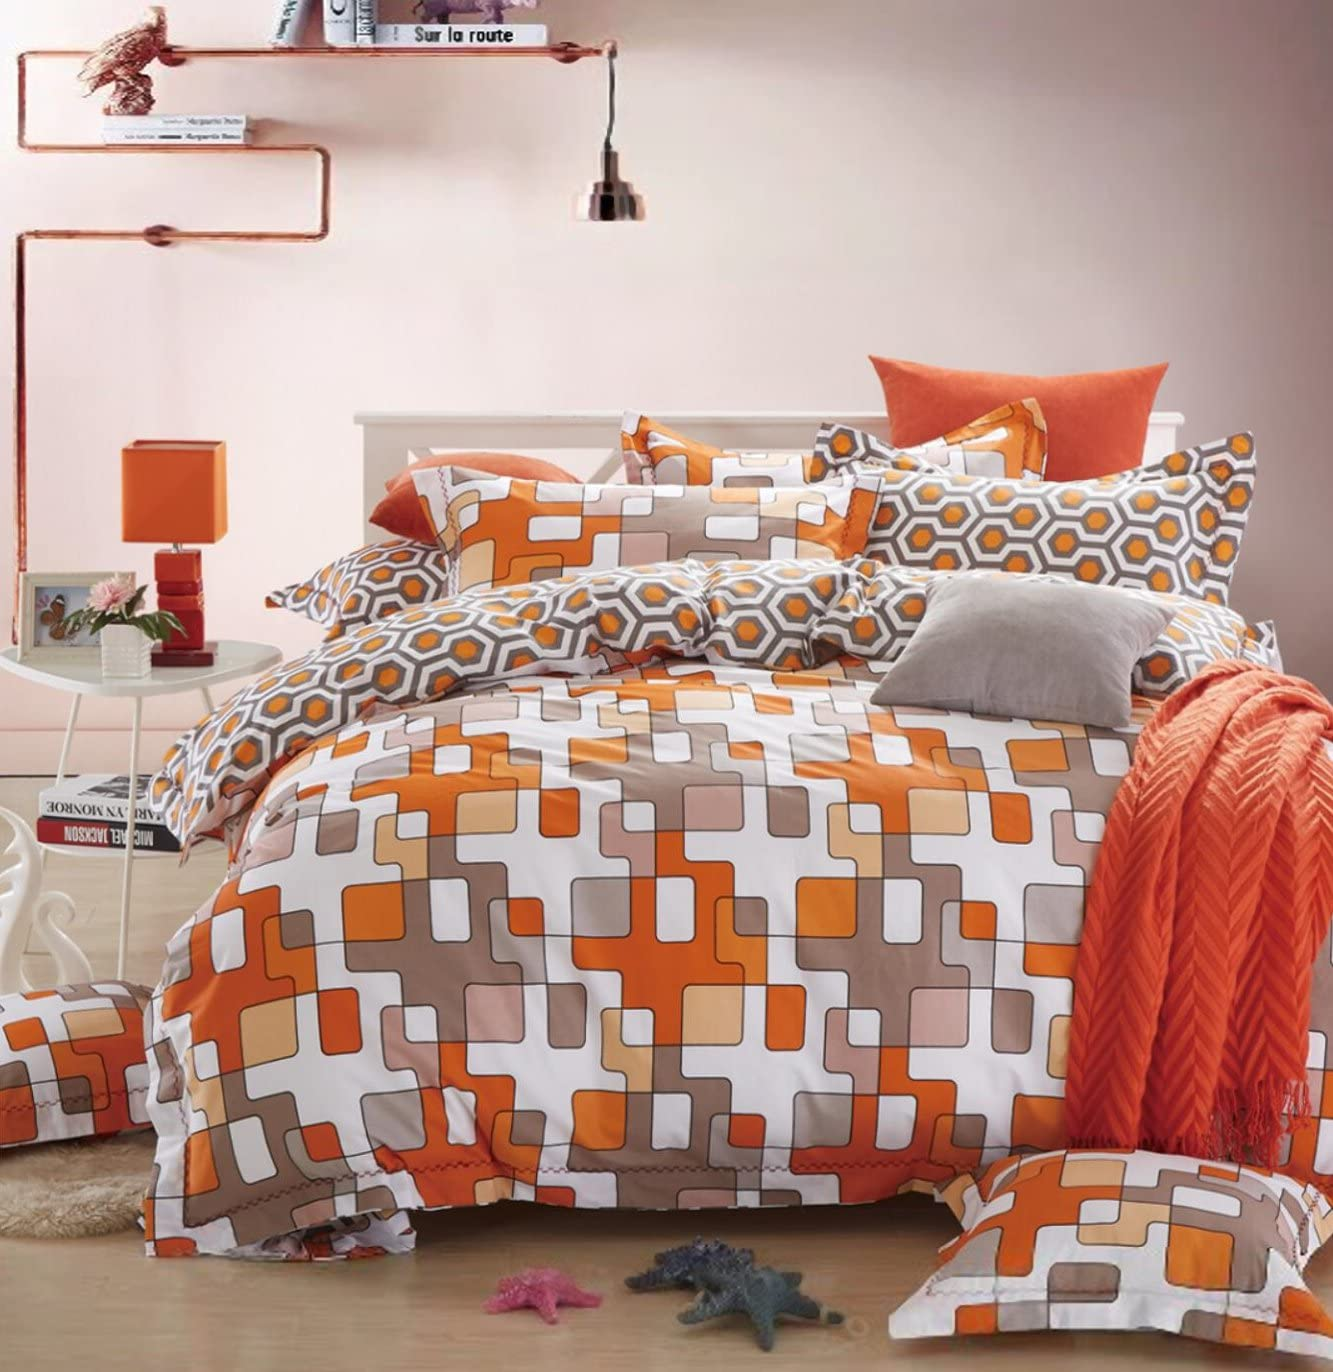 Amazon Com Minimal Style Geometric Shapes Duvet Quilt Cover Scandinavian Midcentury Modern Geo Print 100 Percent Cotton Bedding Set Soft Casual Retro Mosaic Orange Blush Taupe Full Queen Or Twin King Orange Home